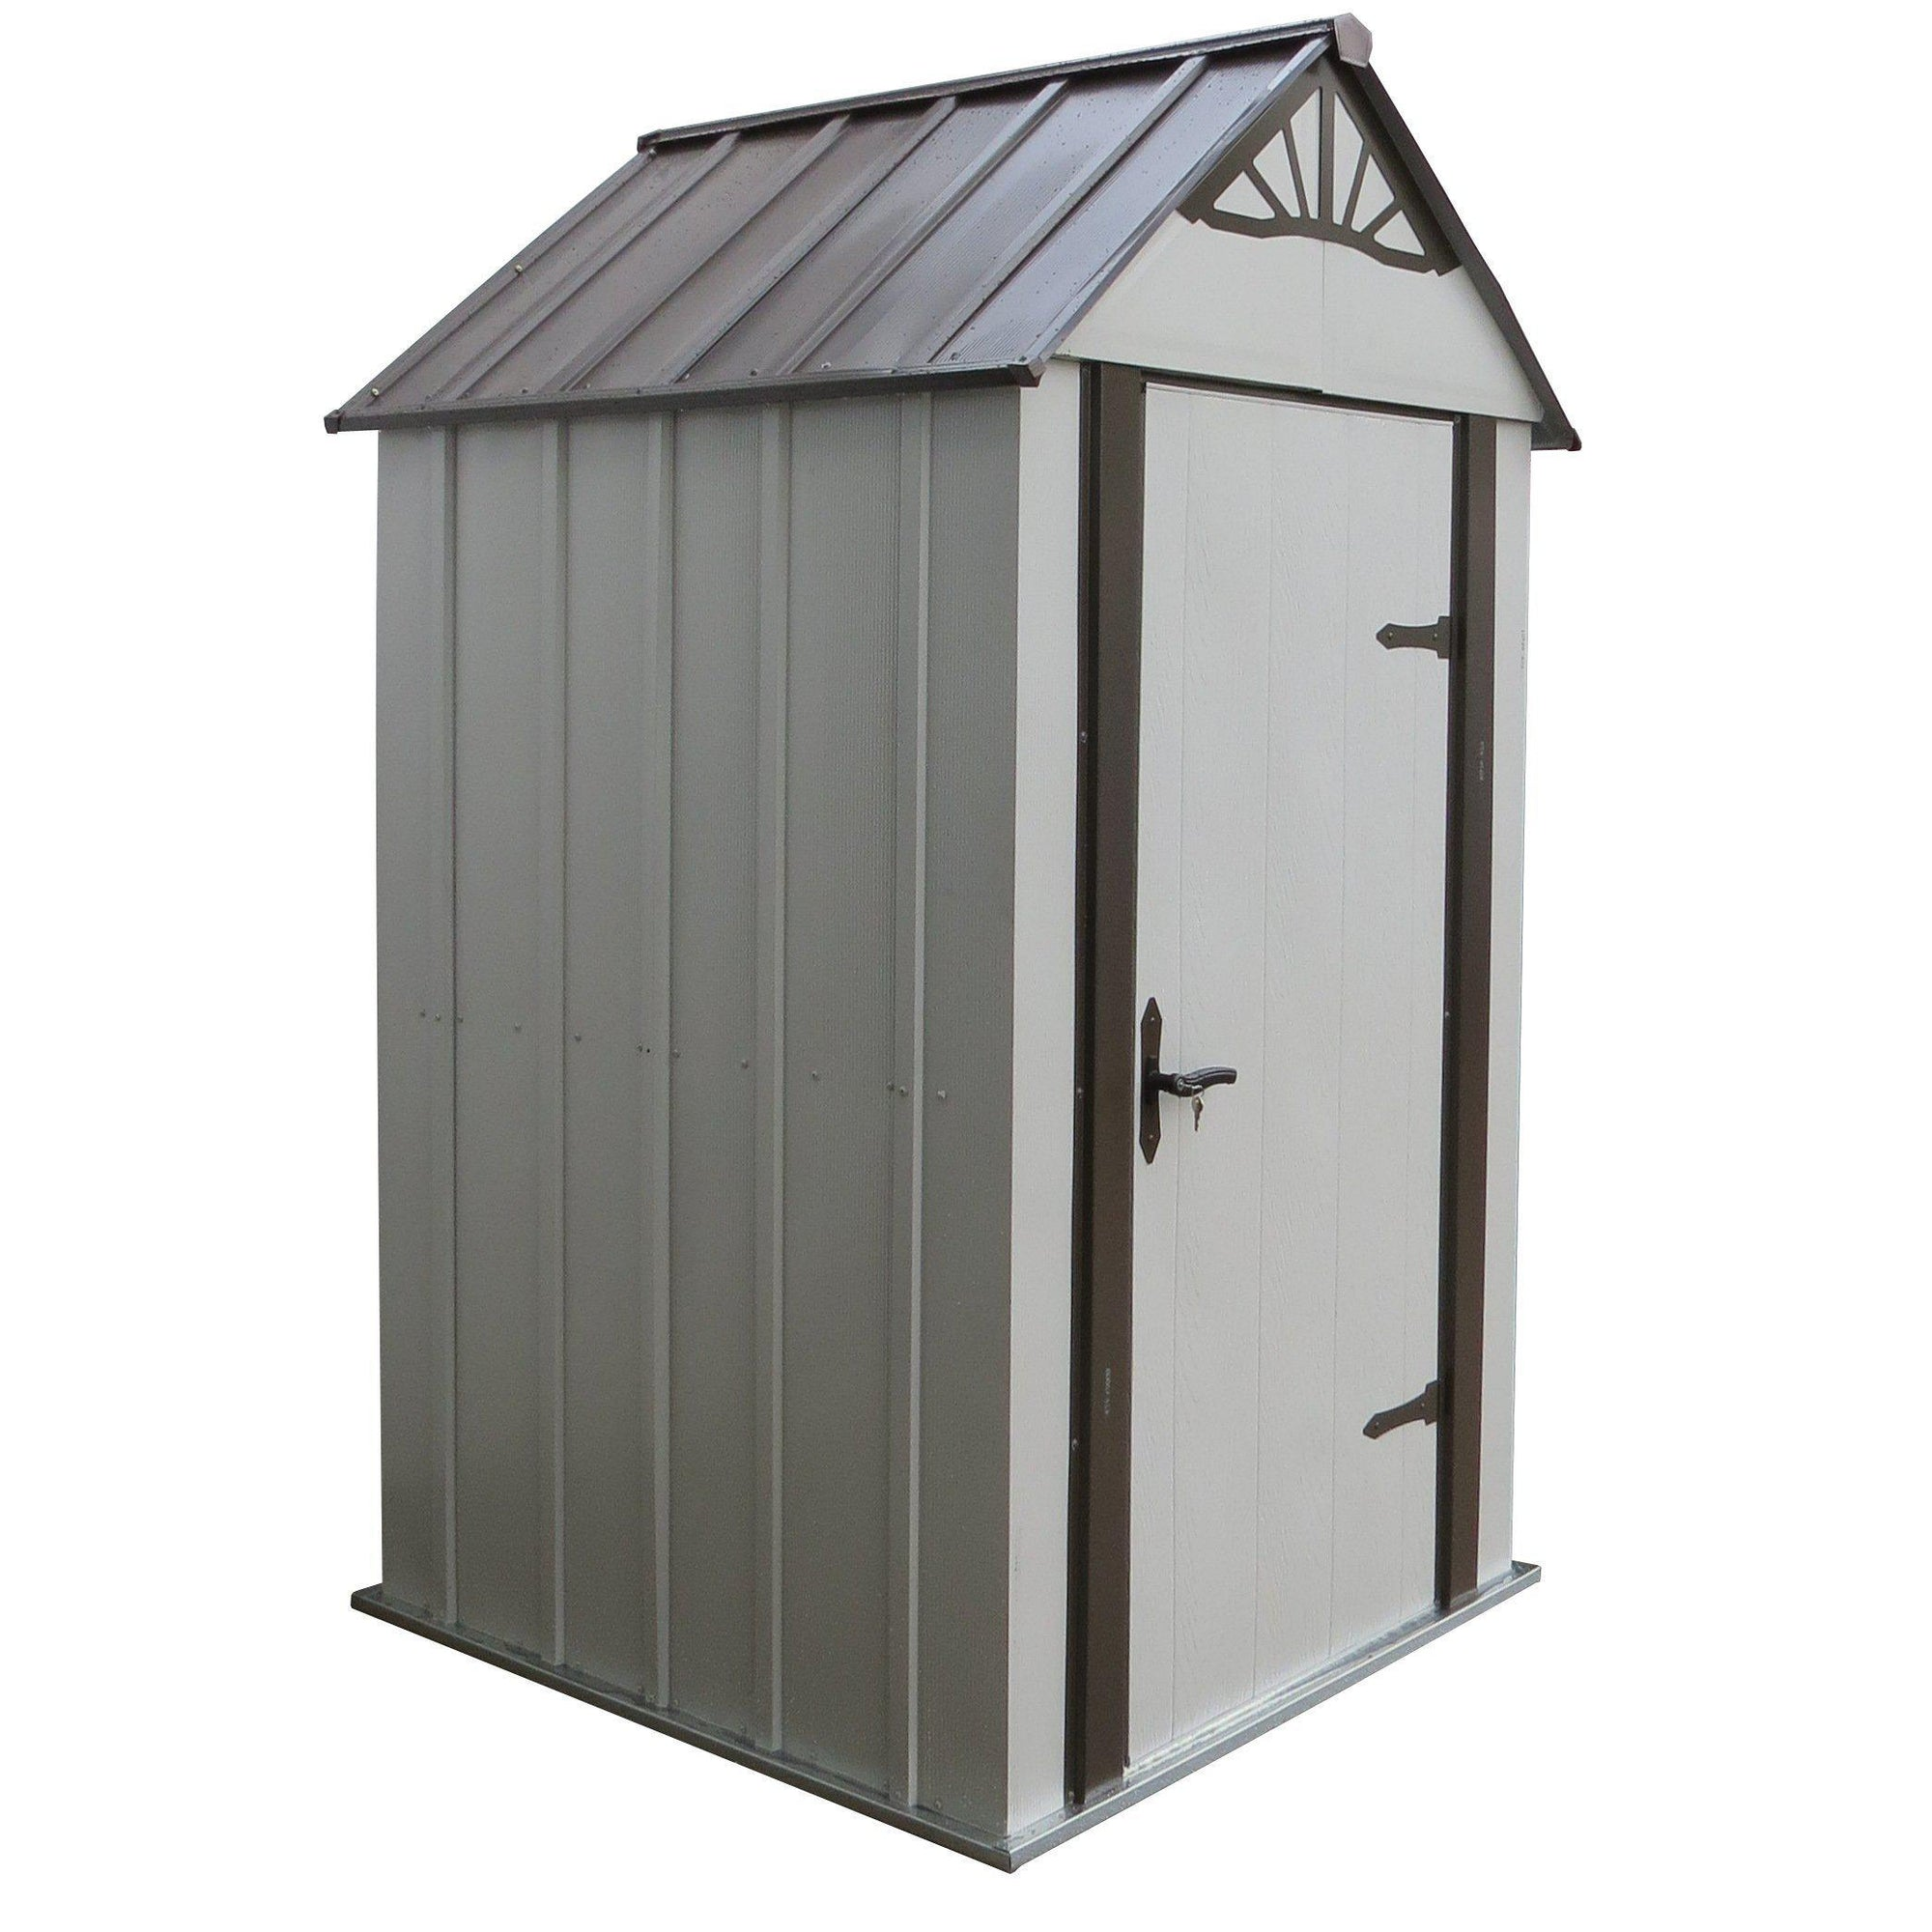 Arrow Designer Metro Shed, Java/Sand, 4 x 4 ft.